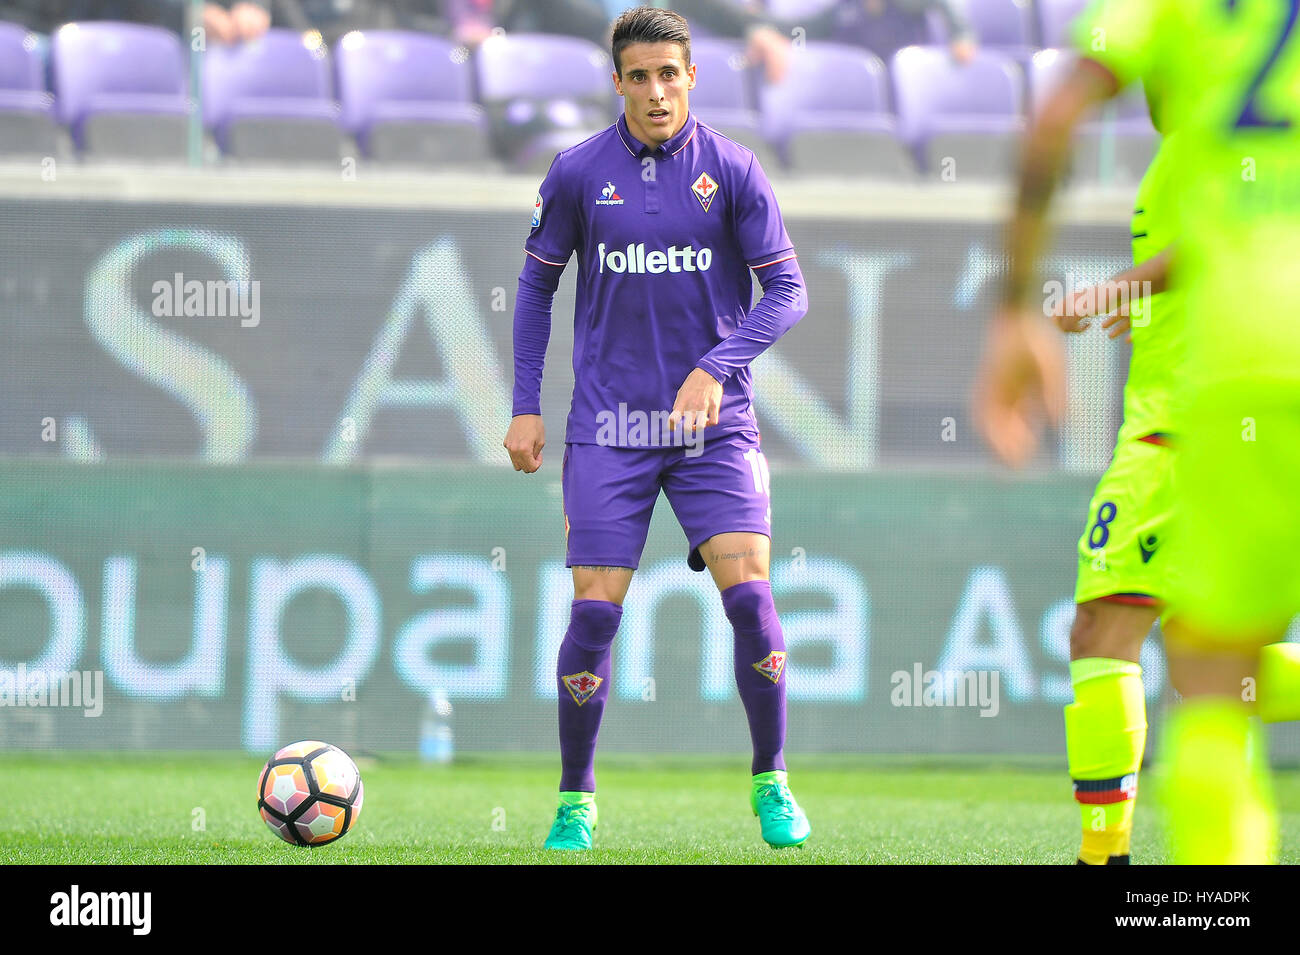 02nd Apr 2017 Acf Fiorentinas Cristian Tello In Action During The Italian Serie A Soccer Match Between Fiorentina And Bologna Fc At Artemio